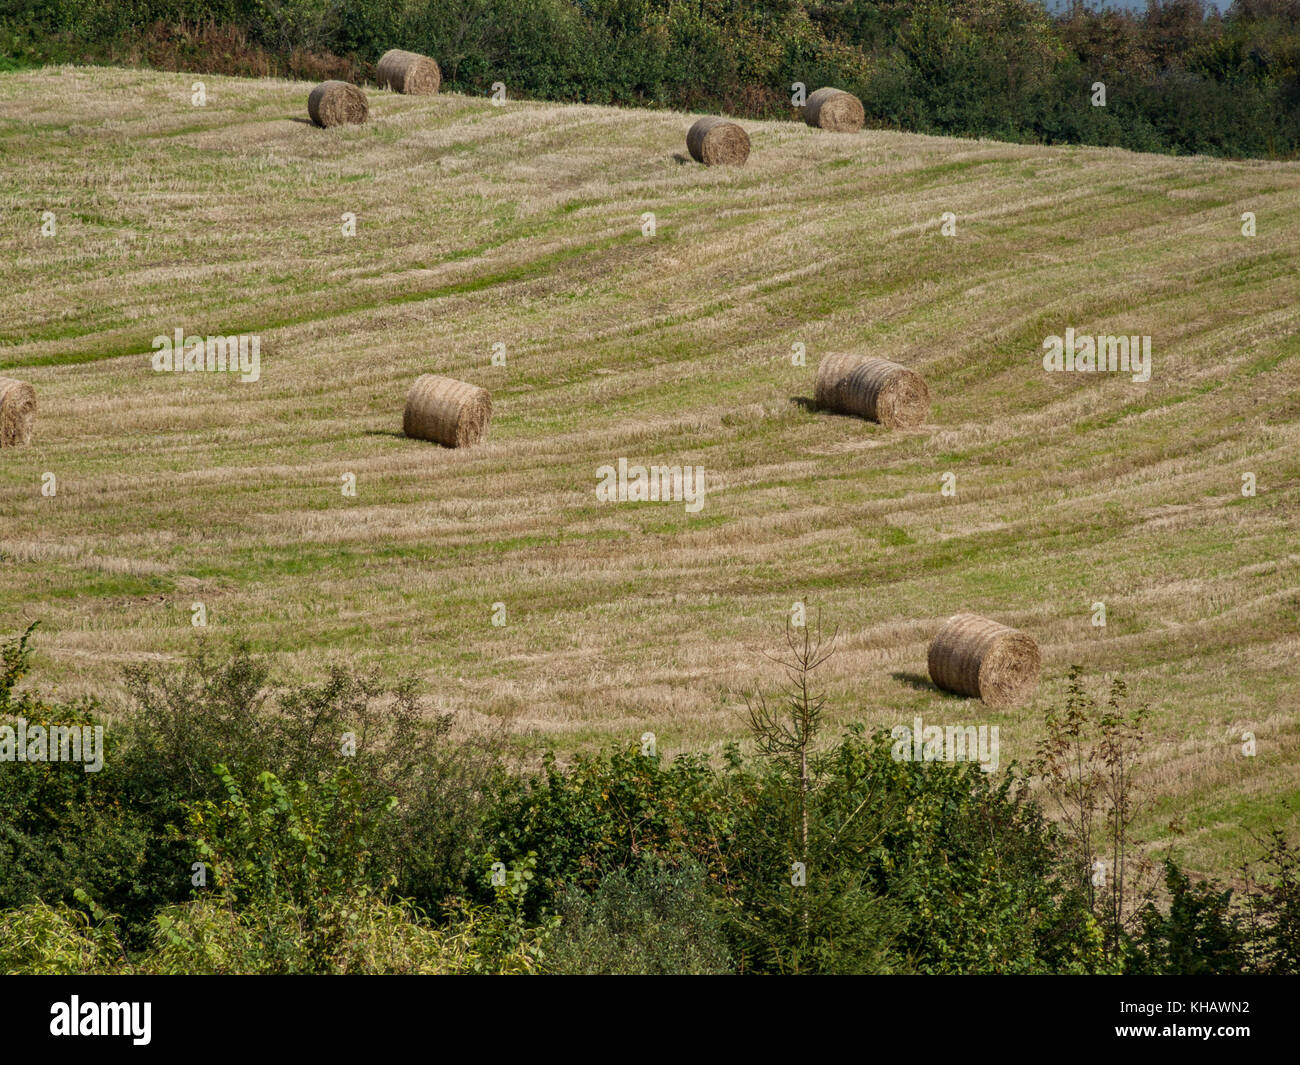 Round hay bales littered across a harvested cereal crop (UK). Metaphor for food security / growing food. - Stock Image